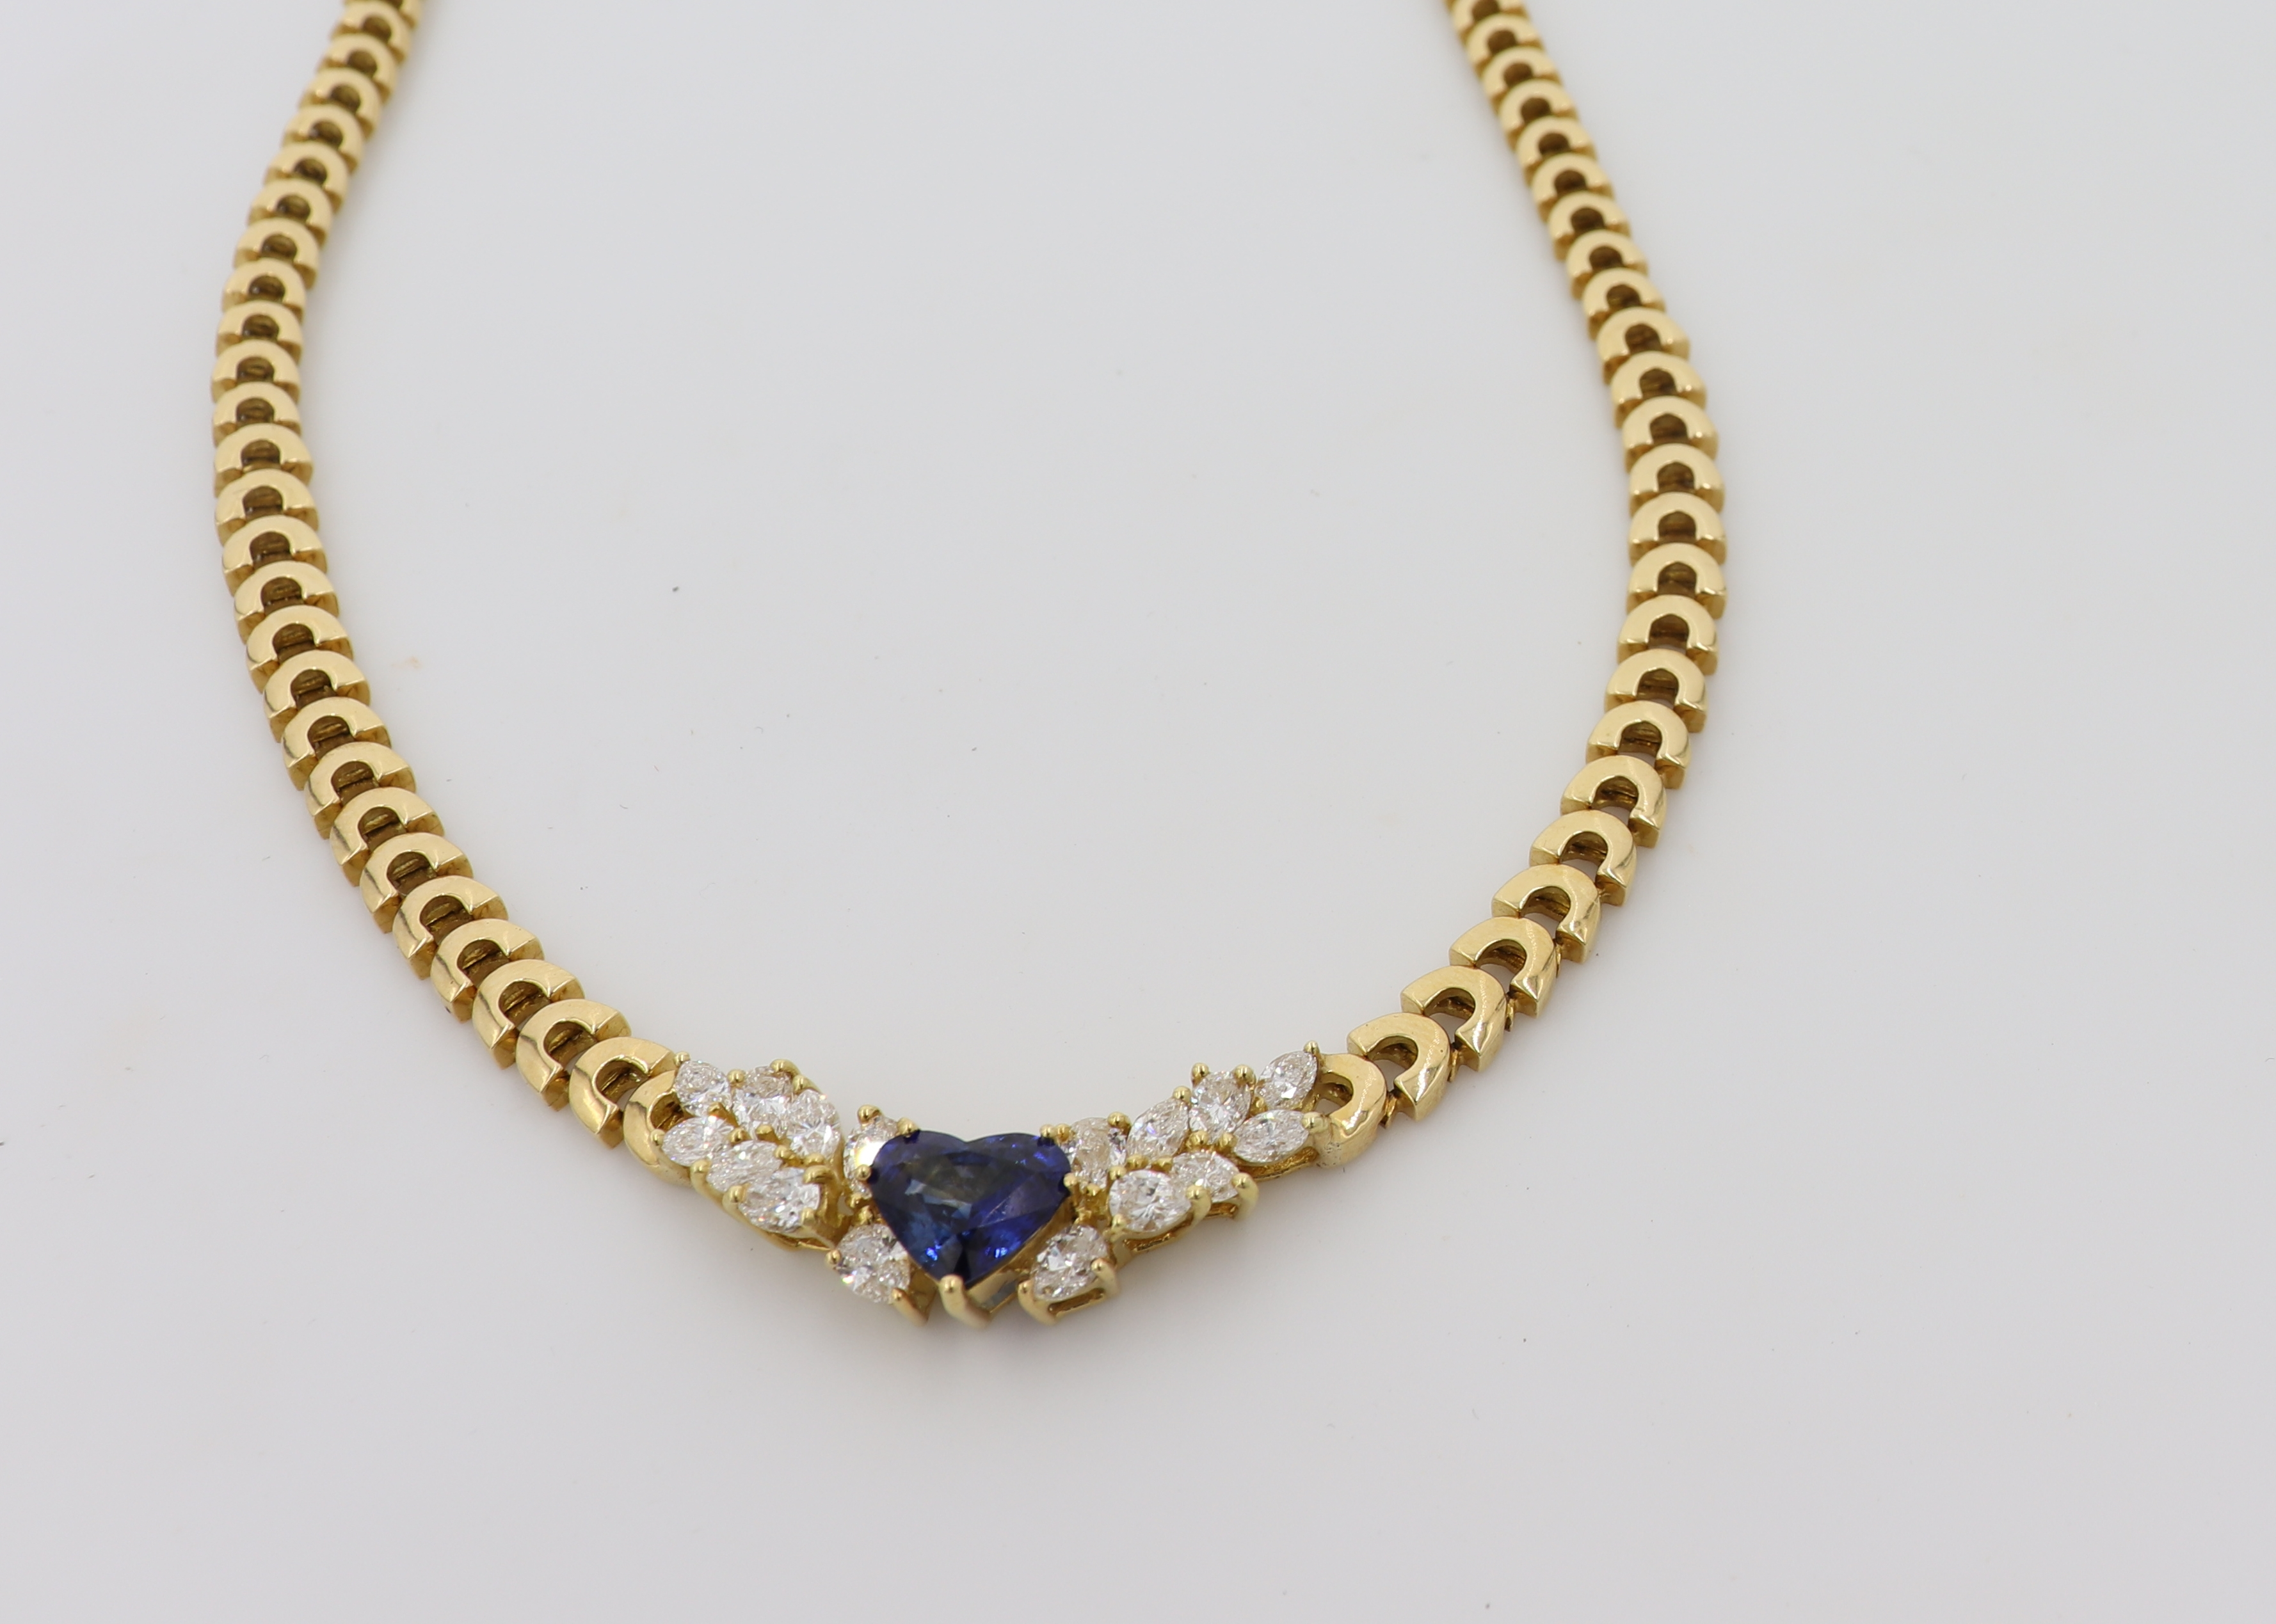 18K Yellow Gold, Sapphire Heart And Diamond Necklace